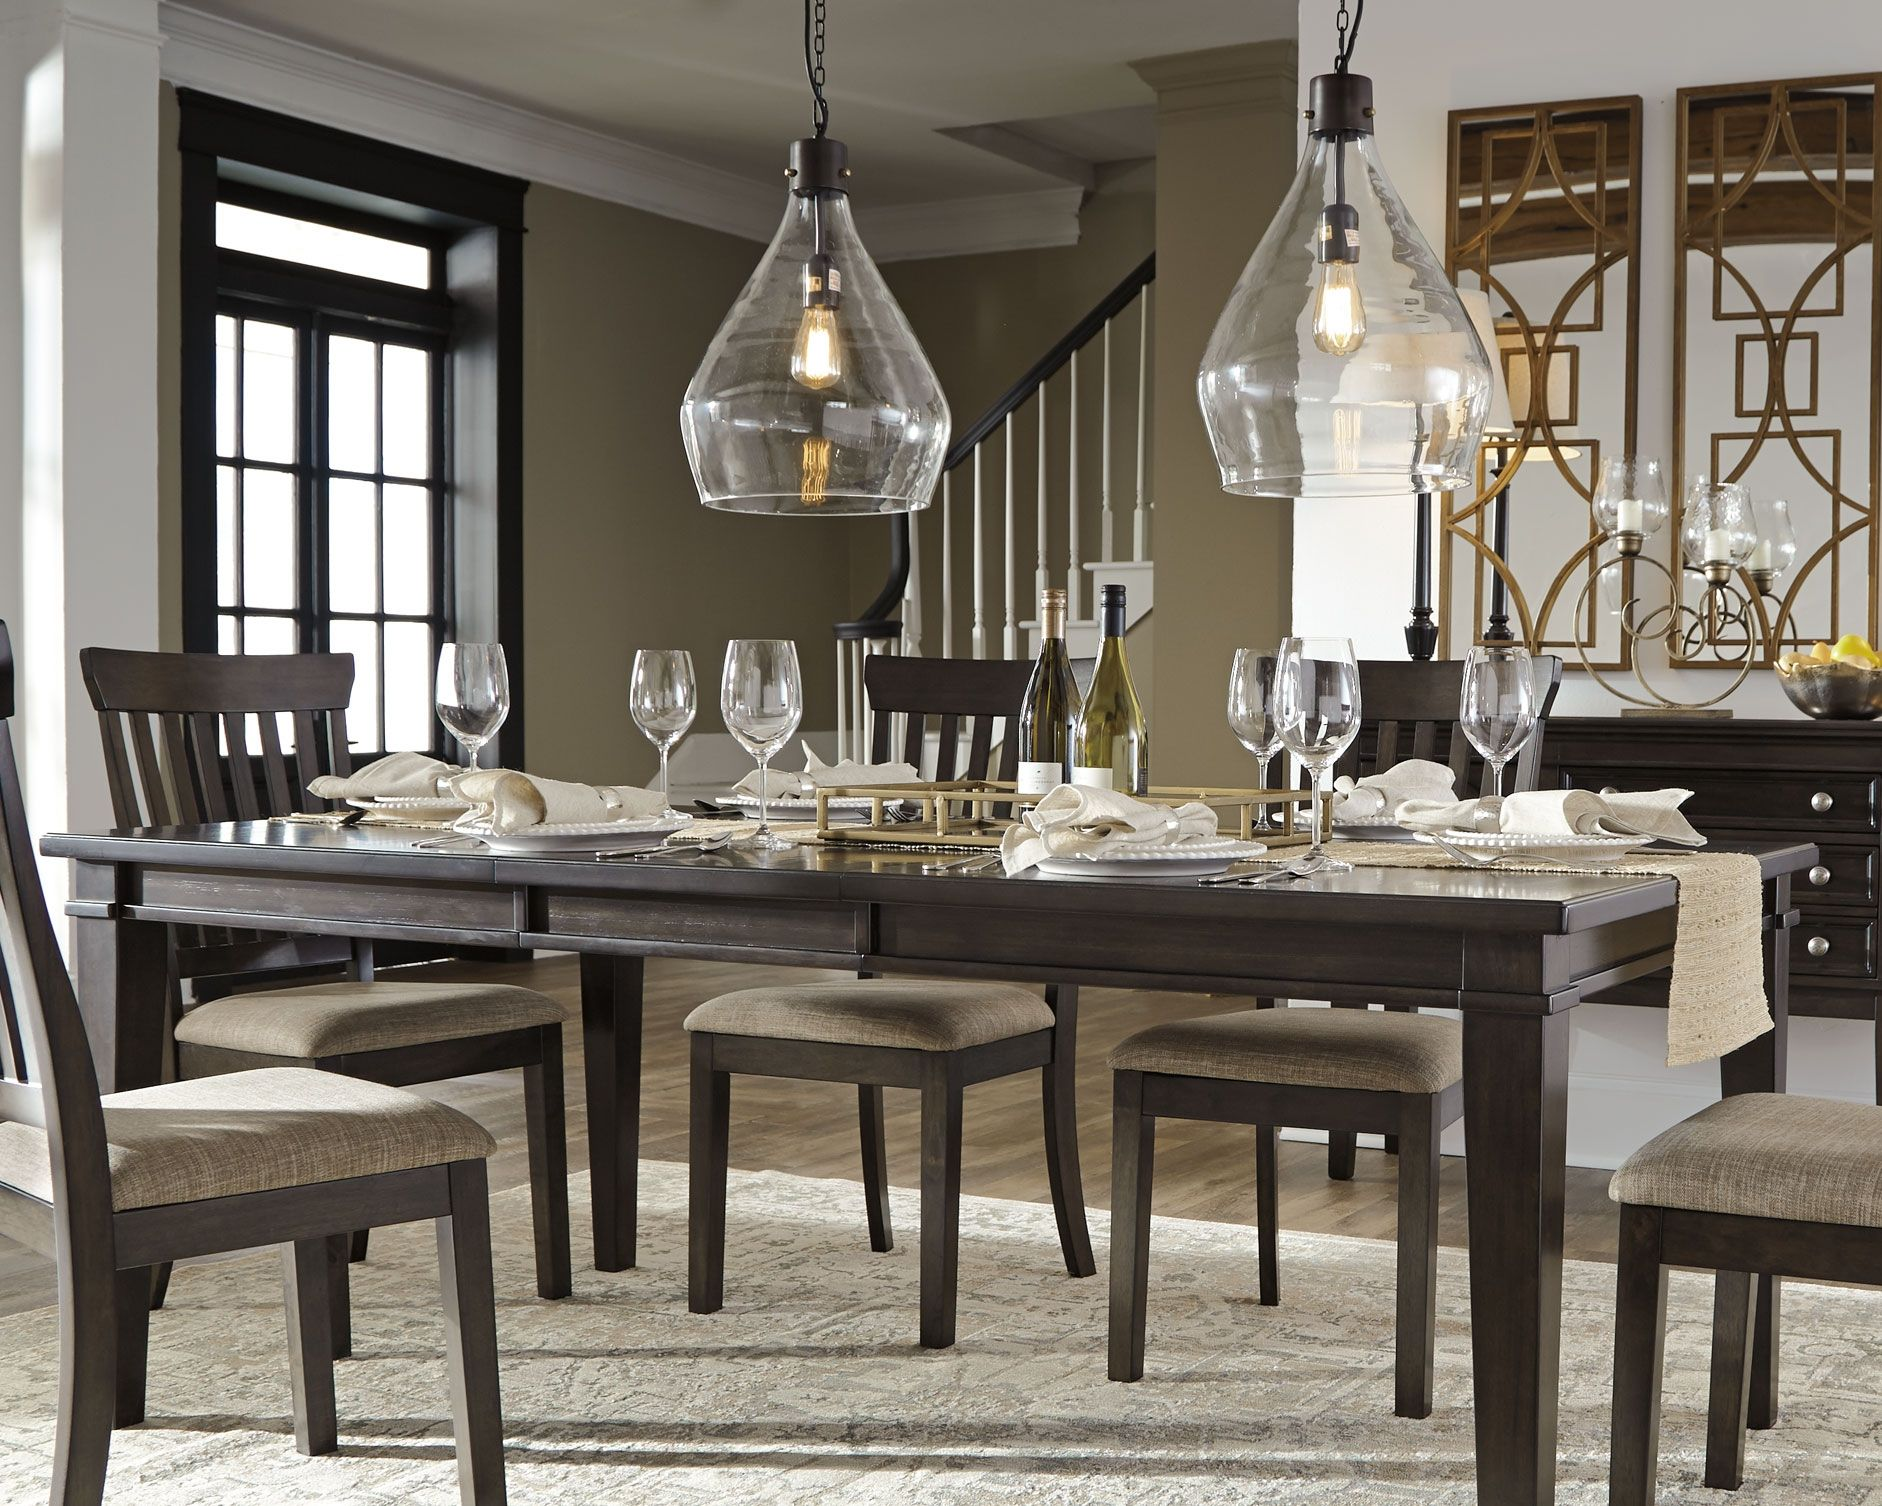 Alexee Dining Room Table Dark Brown Dining Room Table Dining